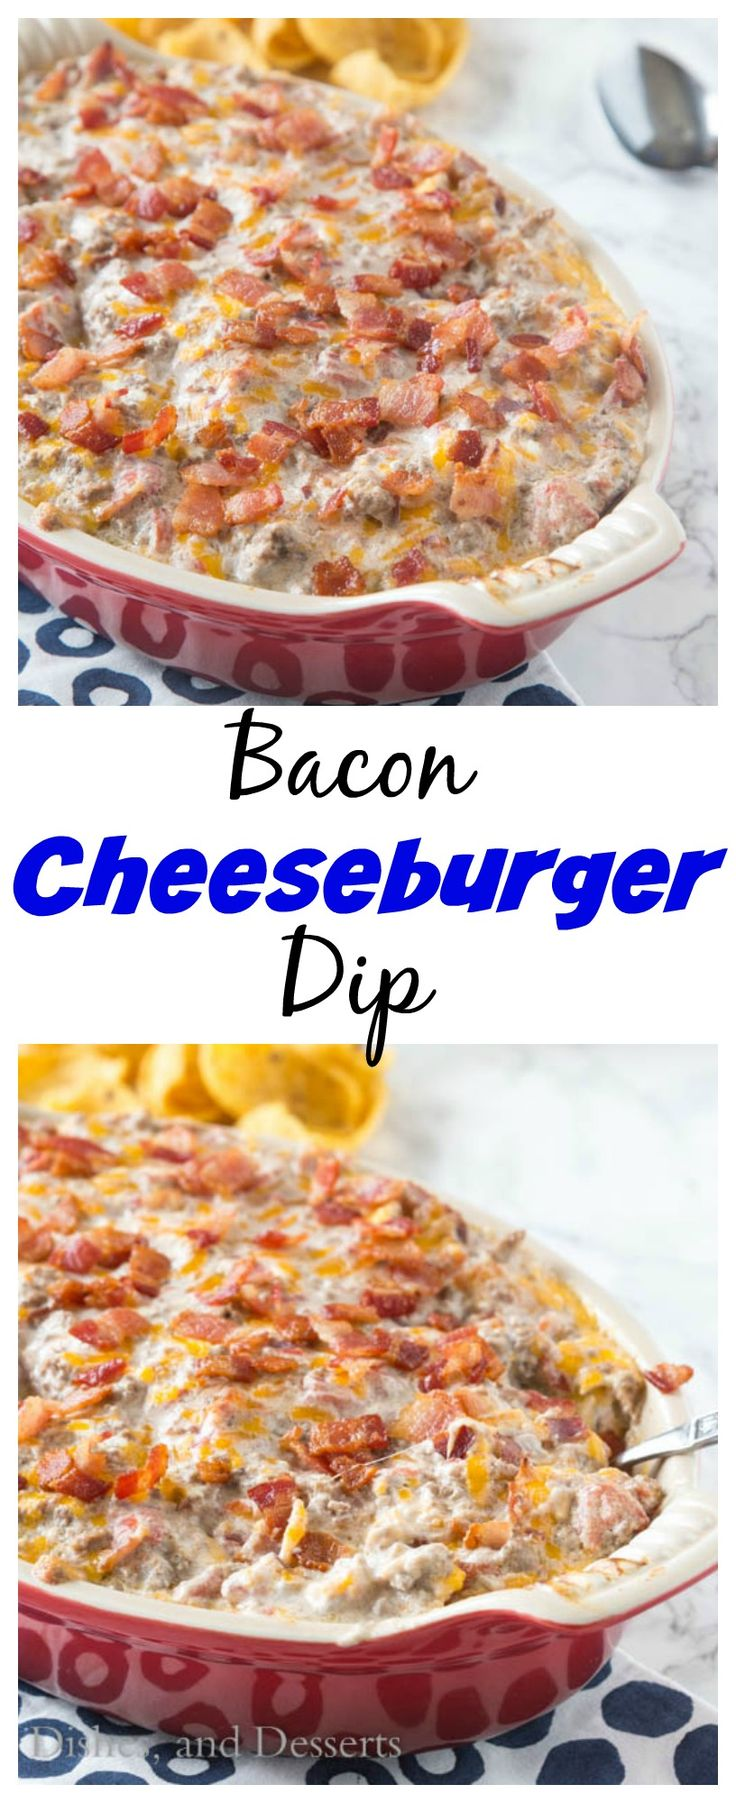 Bacon Cheeseburger Dip – all the flavor of your favorite bacon cheeseburger in an ooey, gooey, cheesy, dip.  Great for game day, entertaining or just because!